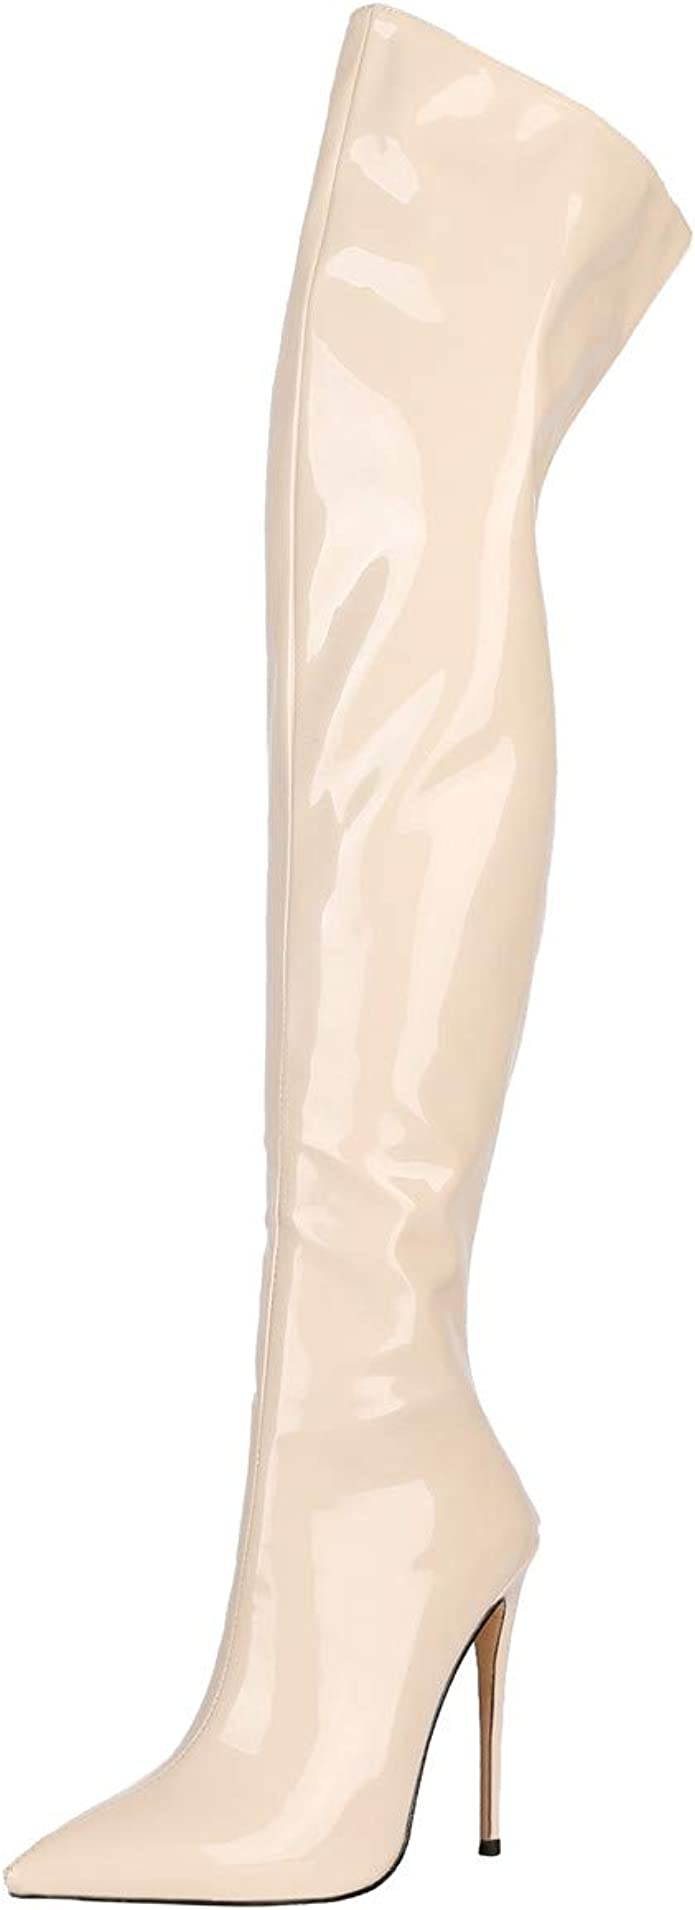 Details about  /Women/'s Thigh High Over Knee Boots Round Toe High Heels Platform Shoe Zip Patent